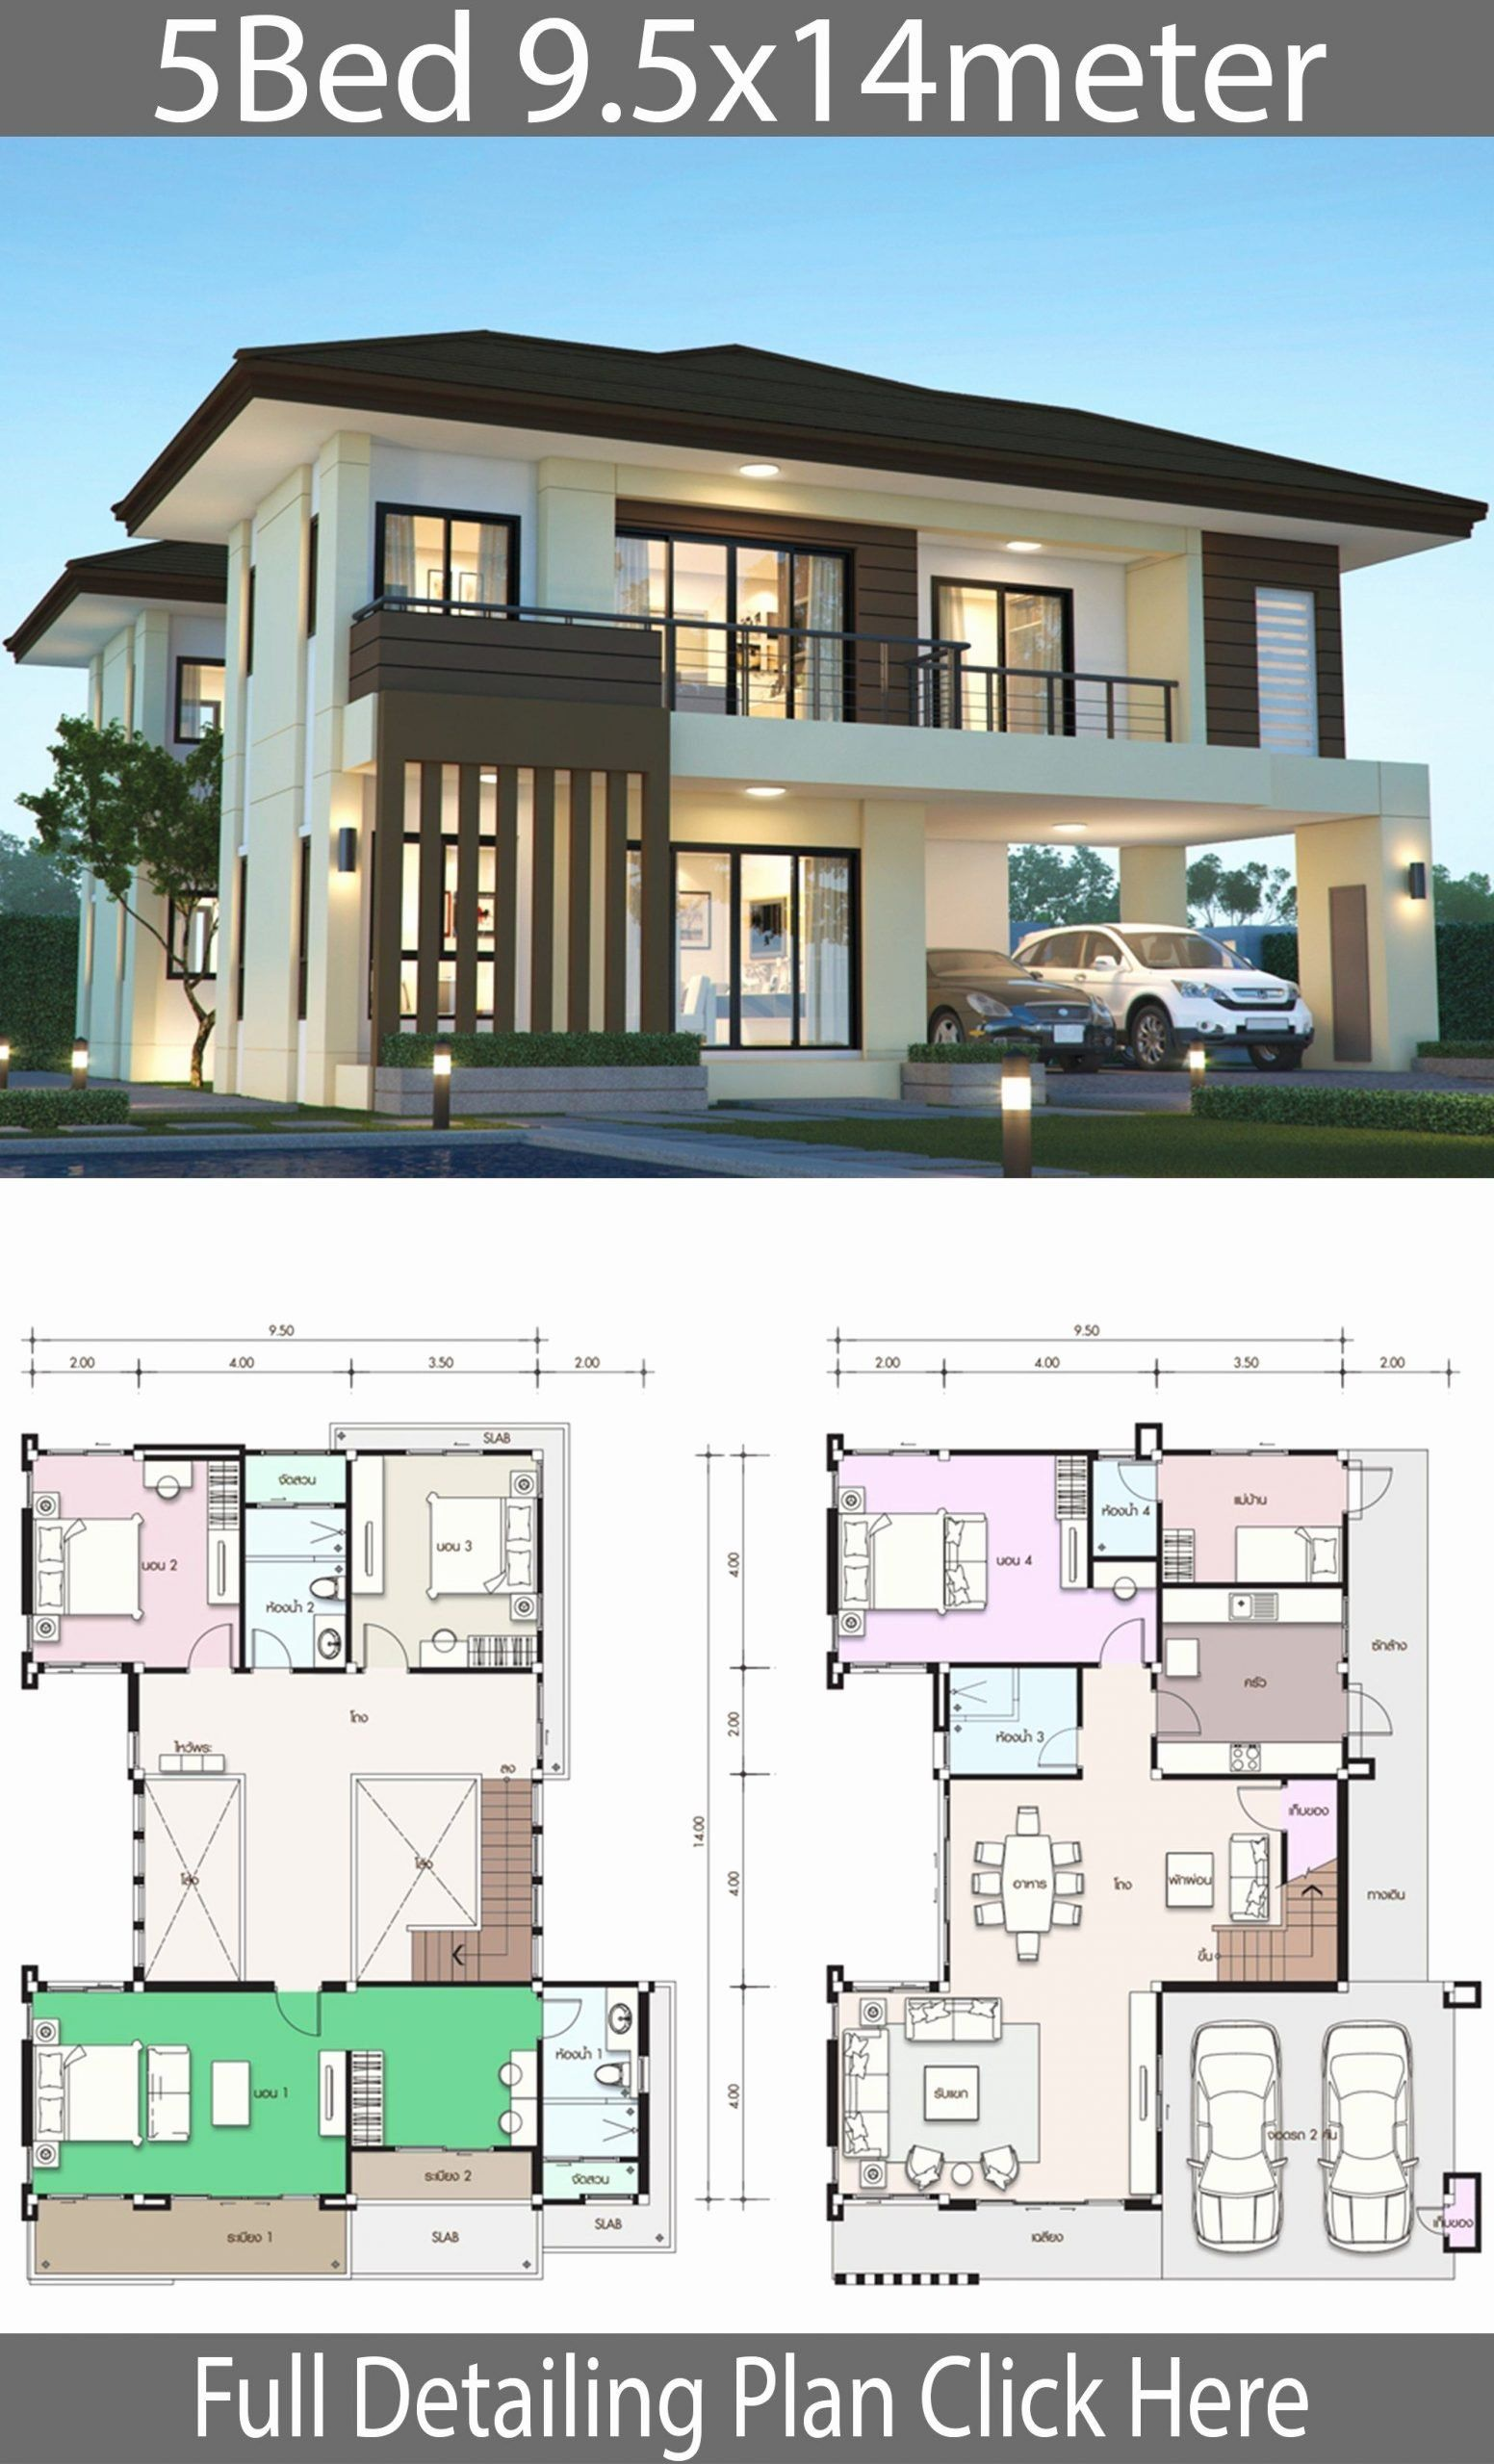 5 Bedroom Duplex House Plans Inspirational House Design Plan 9 5x14m With 5 Bedrooms 2 Storey House Design Affordable House Plans Model House Plan